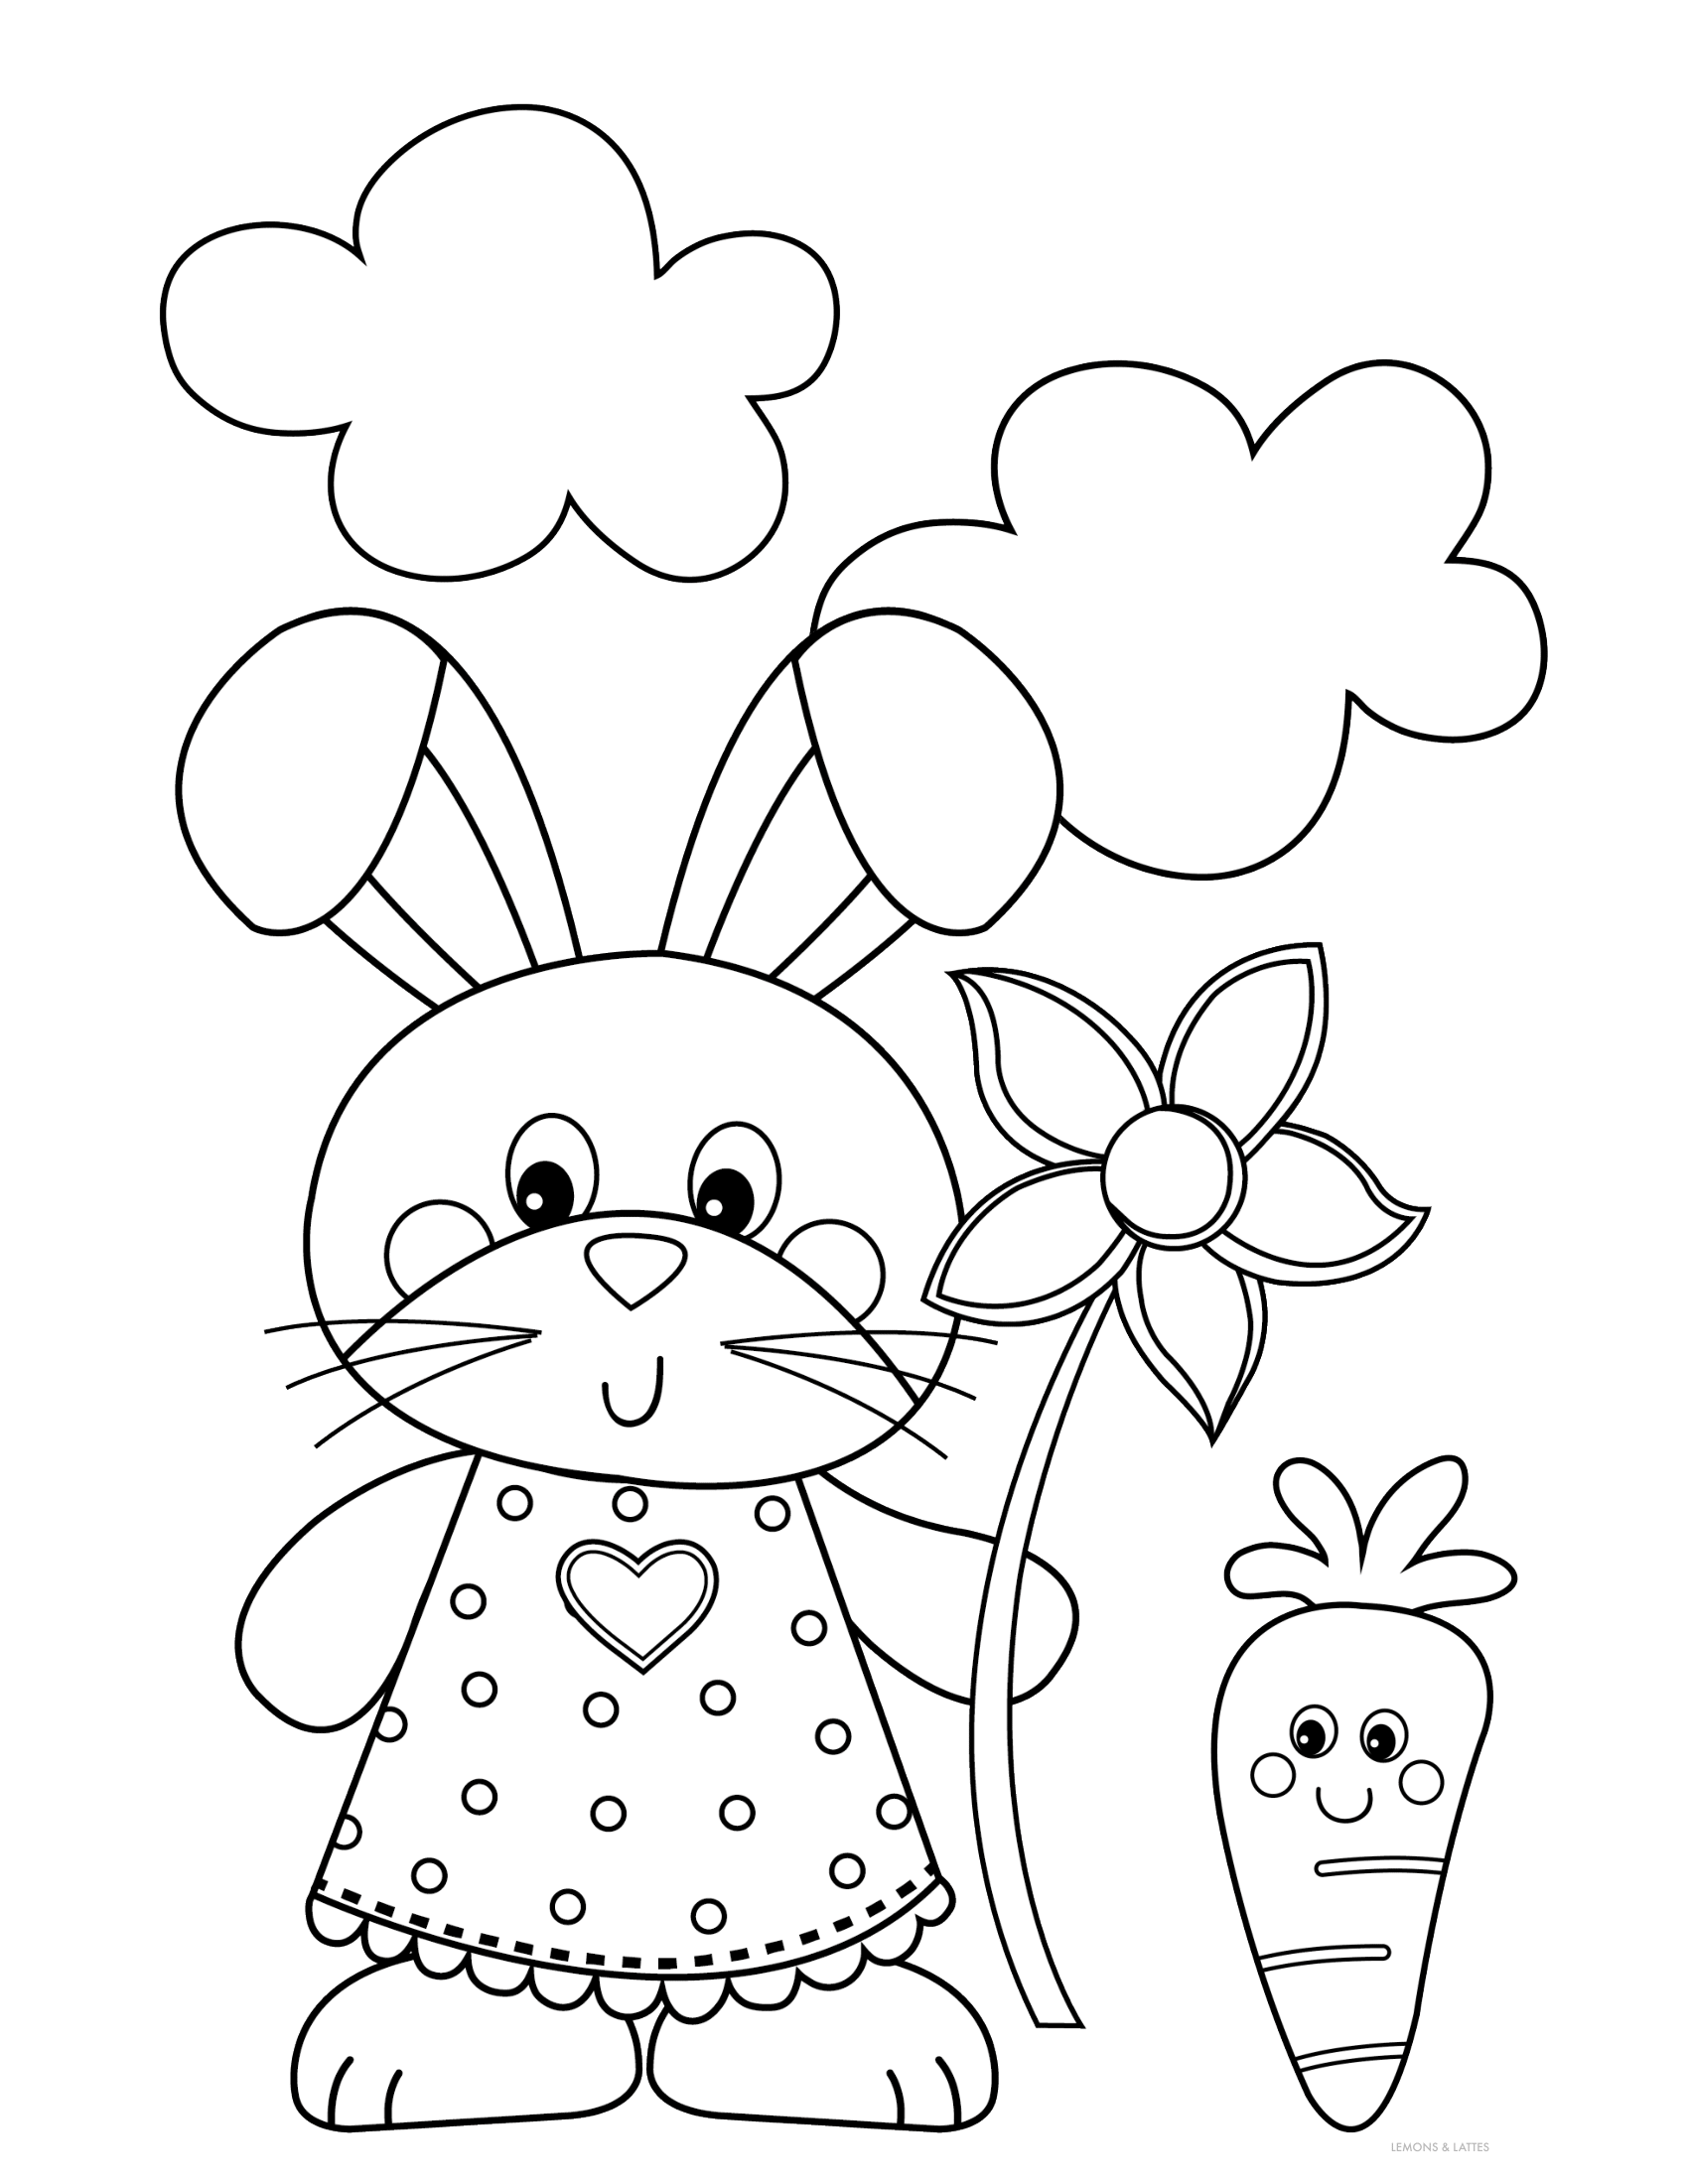 Free Printable Easter Coloring Pages Bunny Coloring Pages Free Easter Coloring Pages Easter Coloring Book